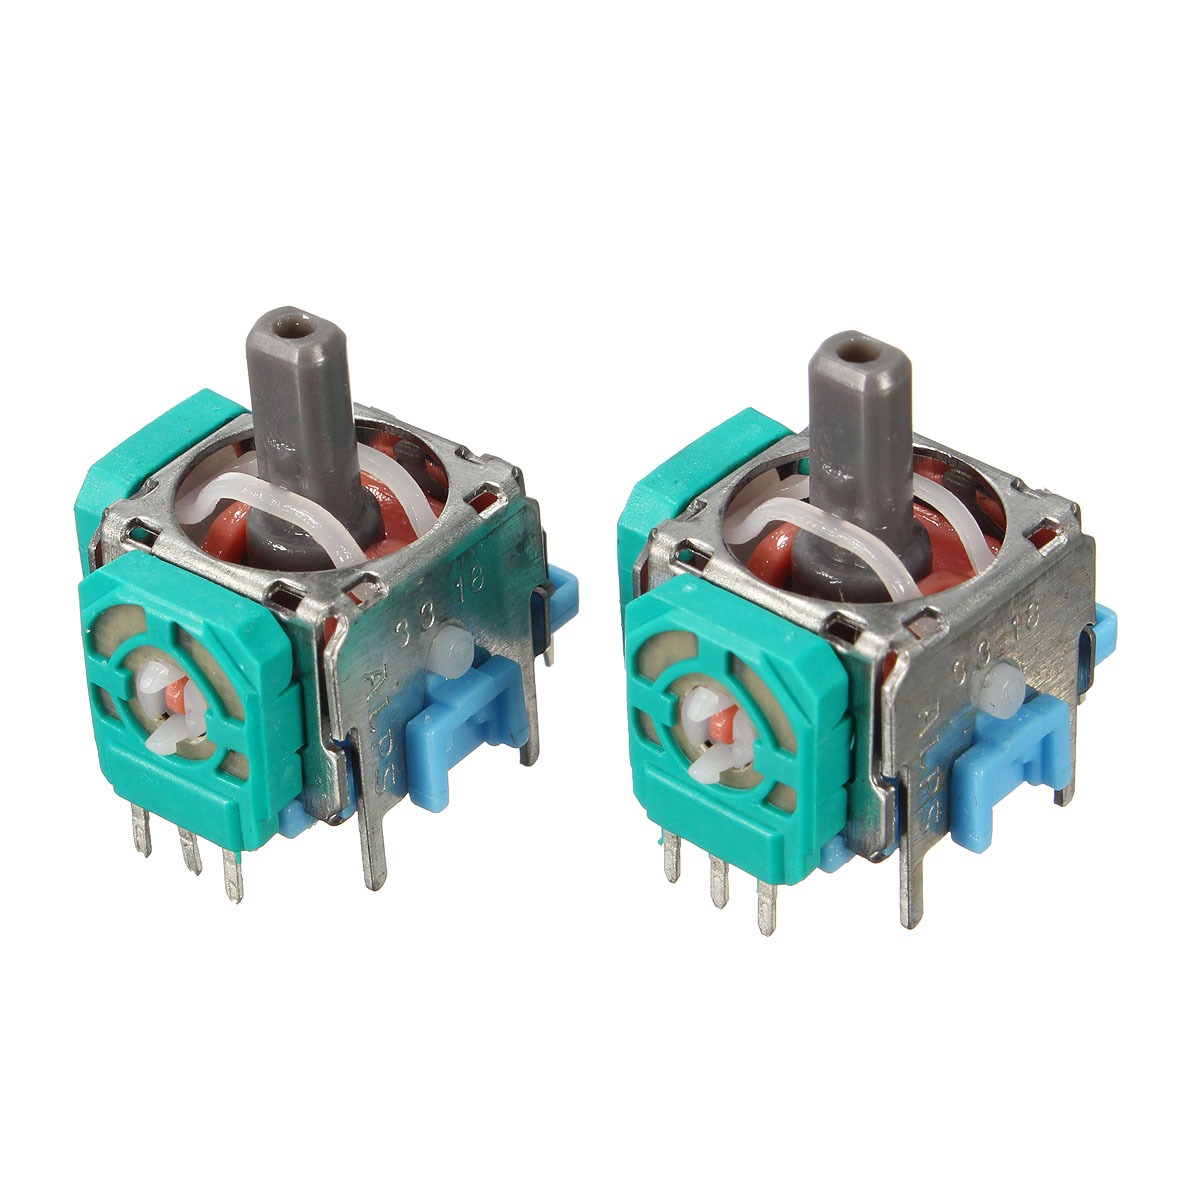 3D Joystick Repair Part 3-pin Analog Replacement Switch For Play Station 4 For PS4 Control